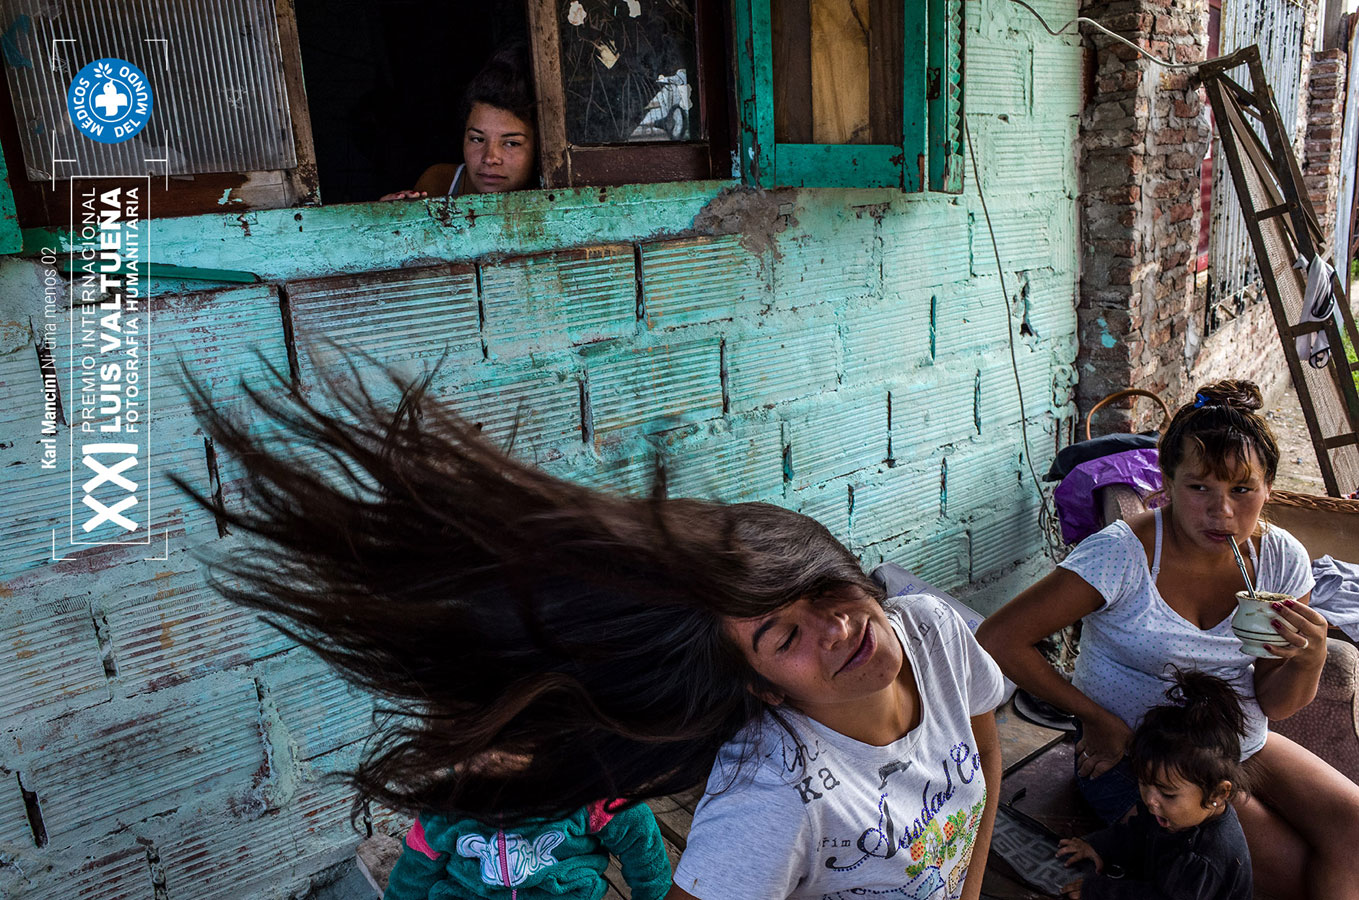 © Karl Mancini, Luis Valtueña International Humanitarian Photography Award